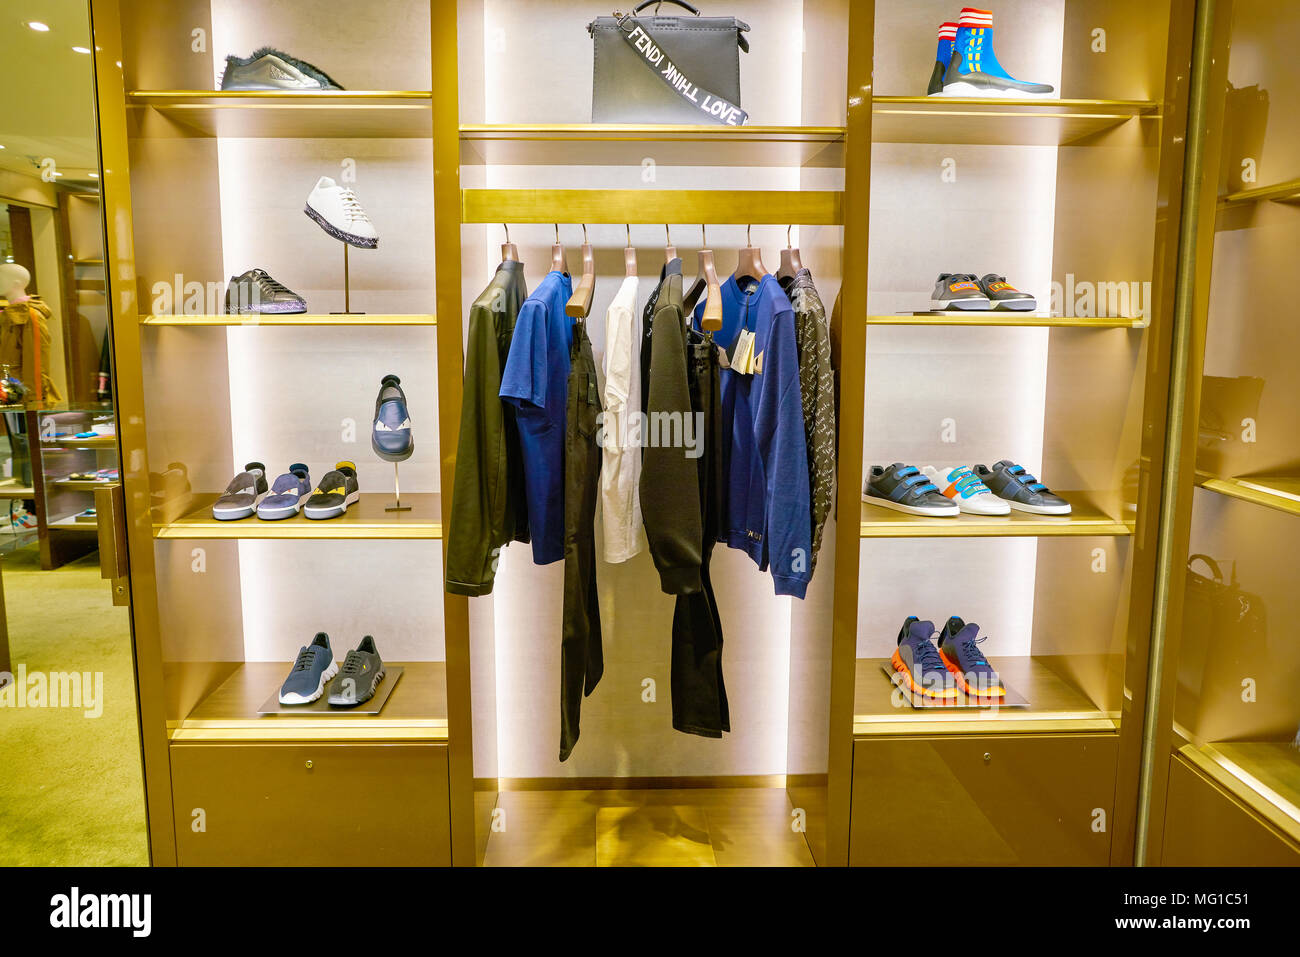 5cda332330ad Fendi Shoes Stock Photos   Fendi Shoes Stock Images - Alamy